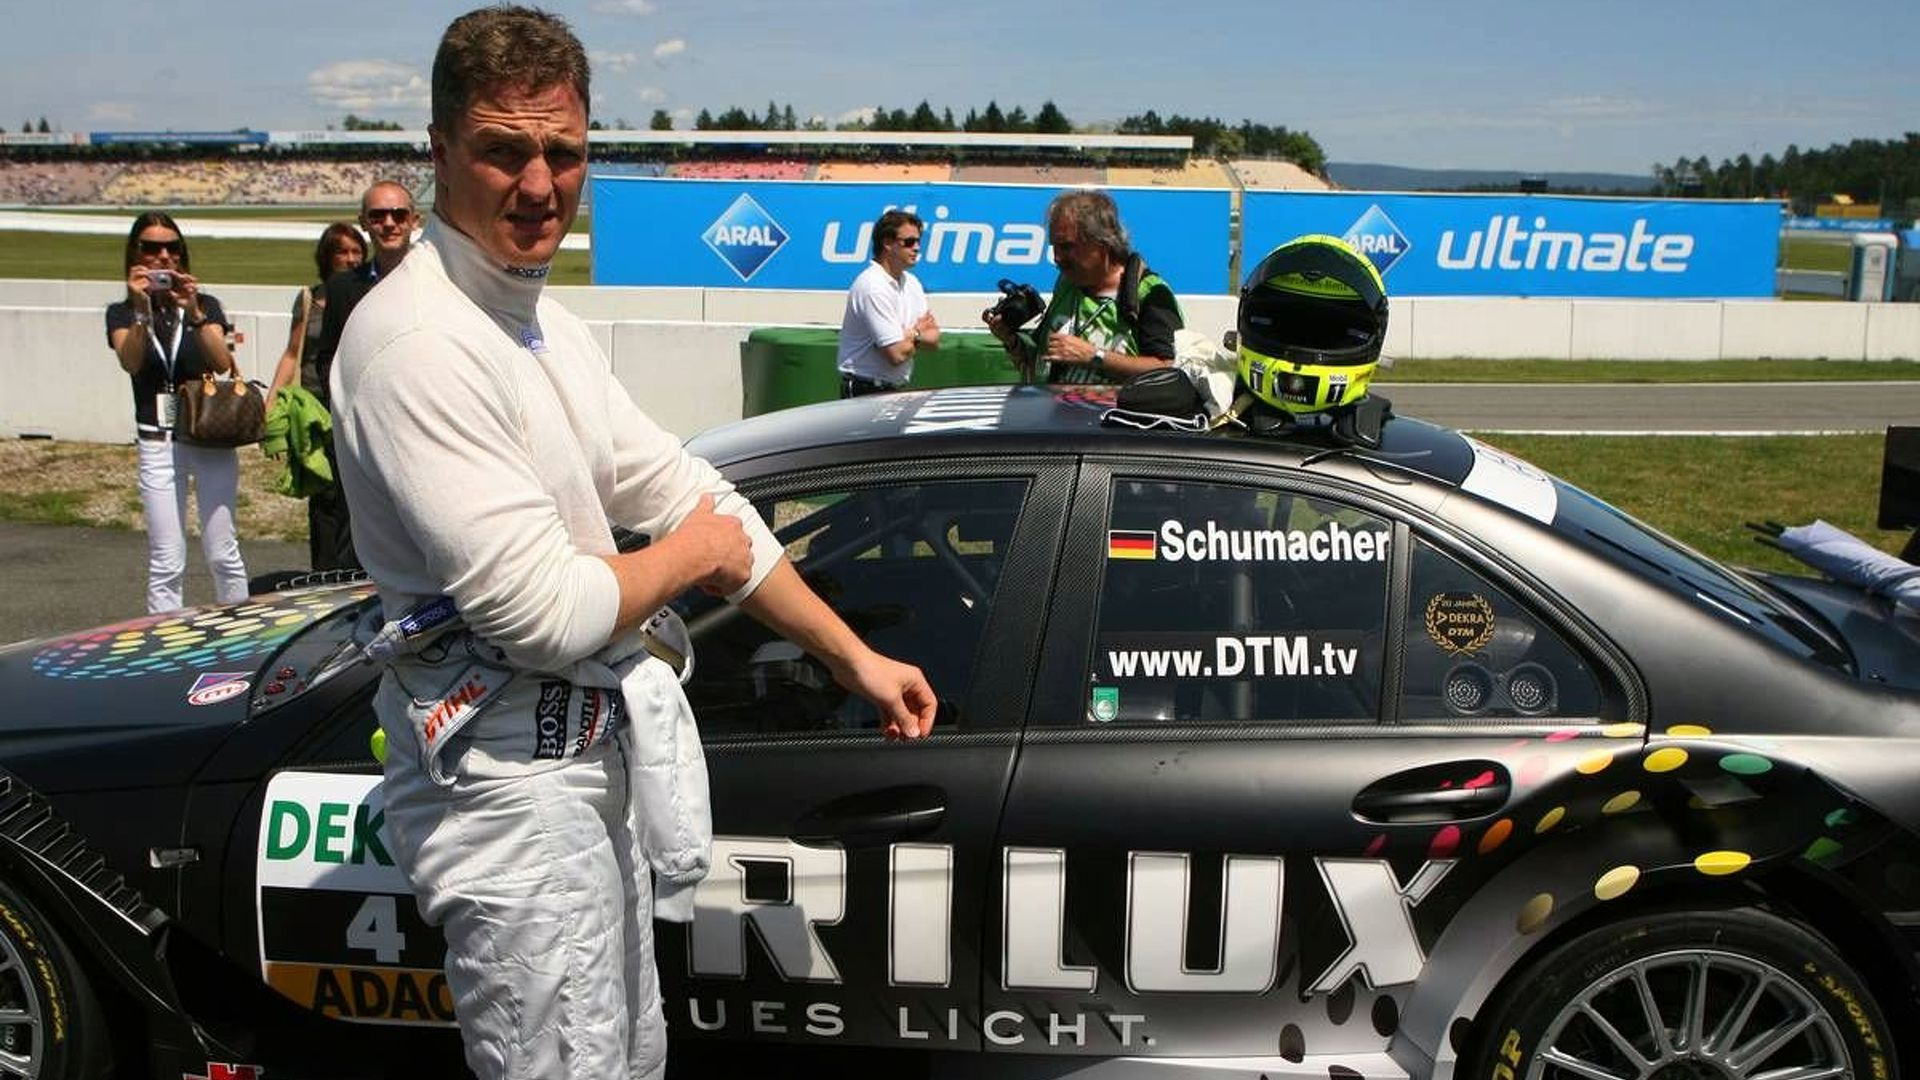 Ralf Schumacher rejected F1 offer for 2010